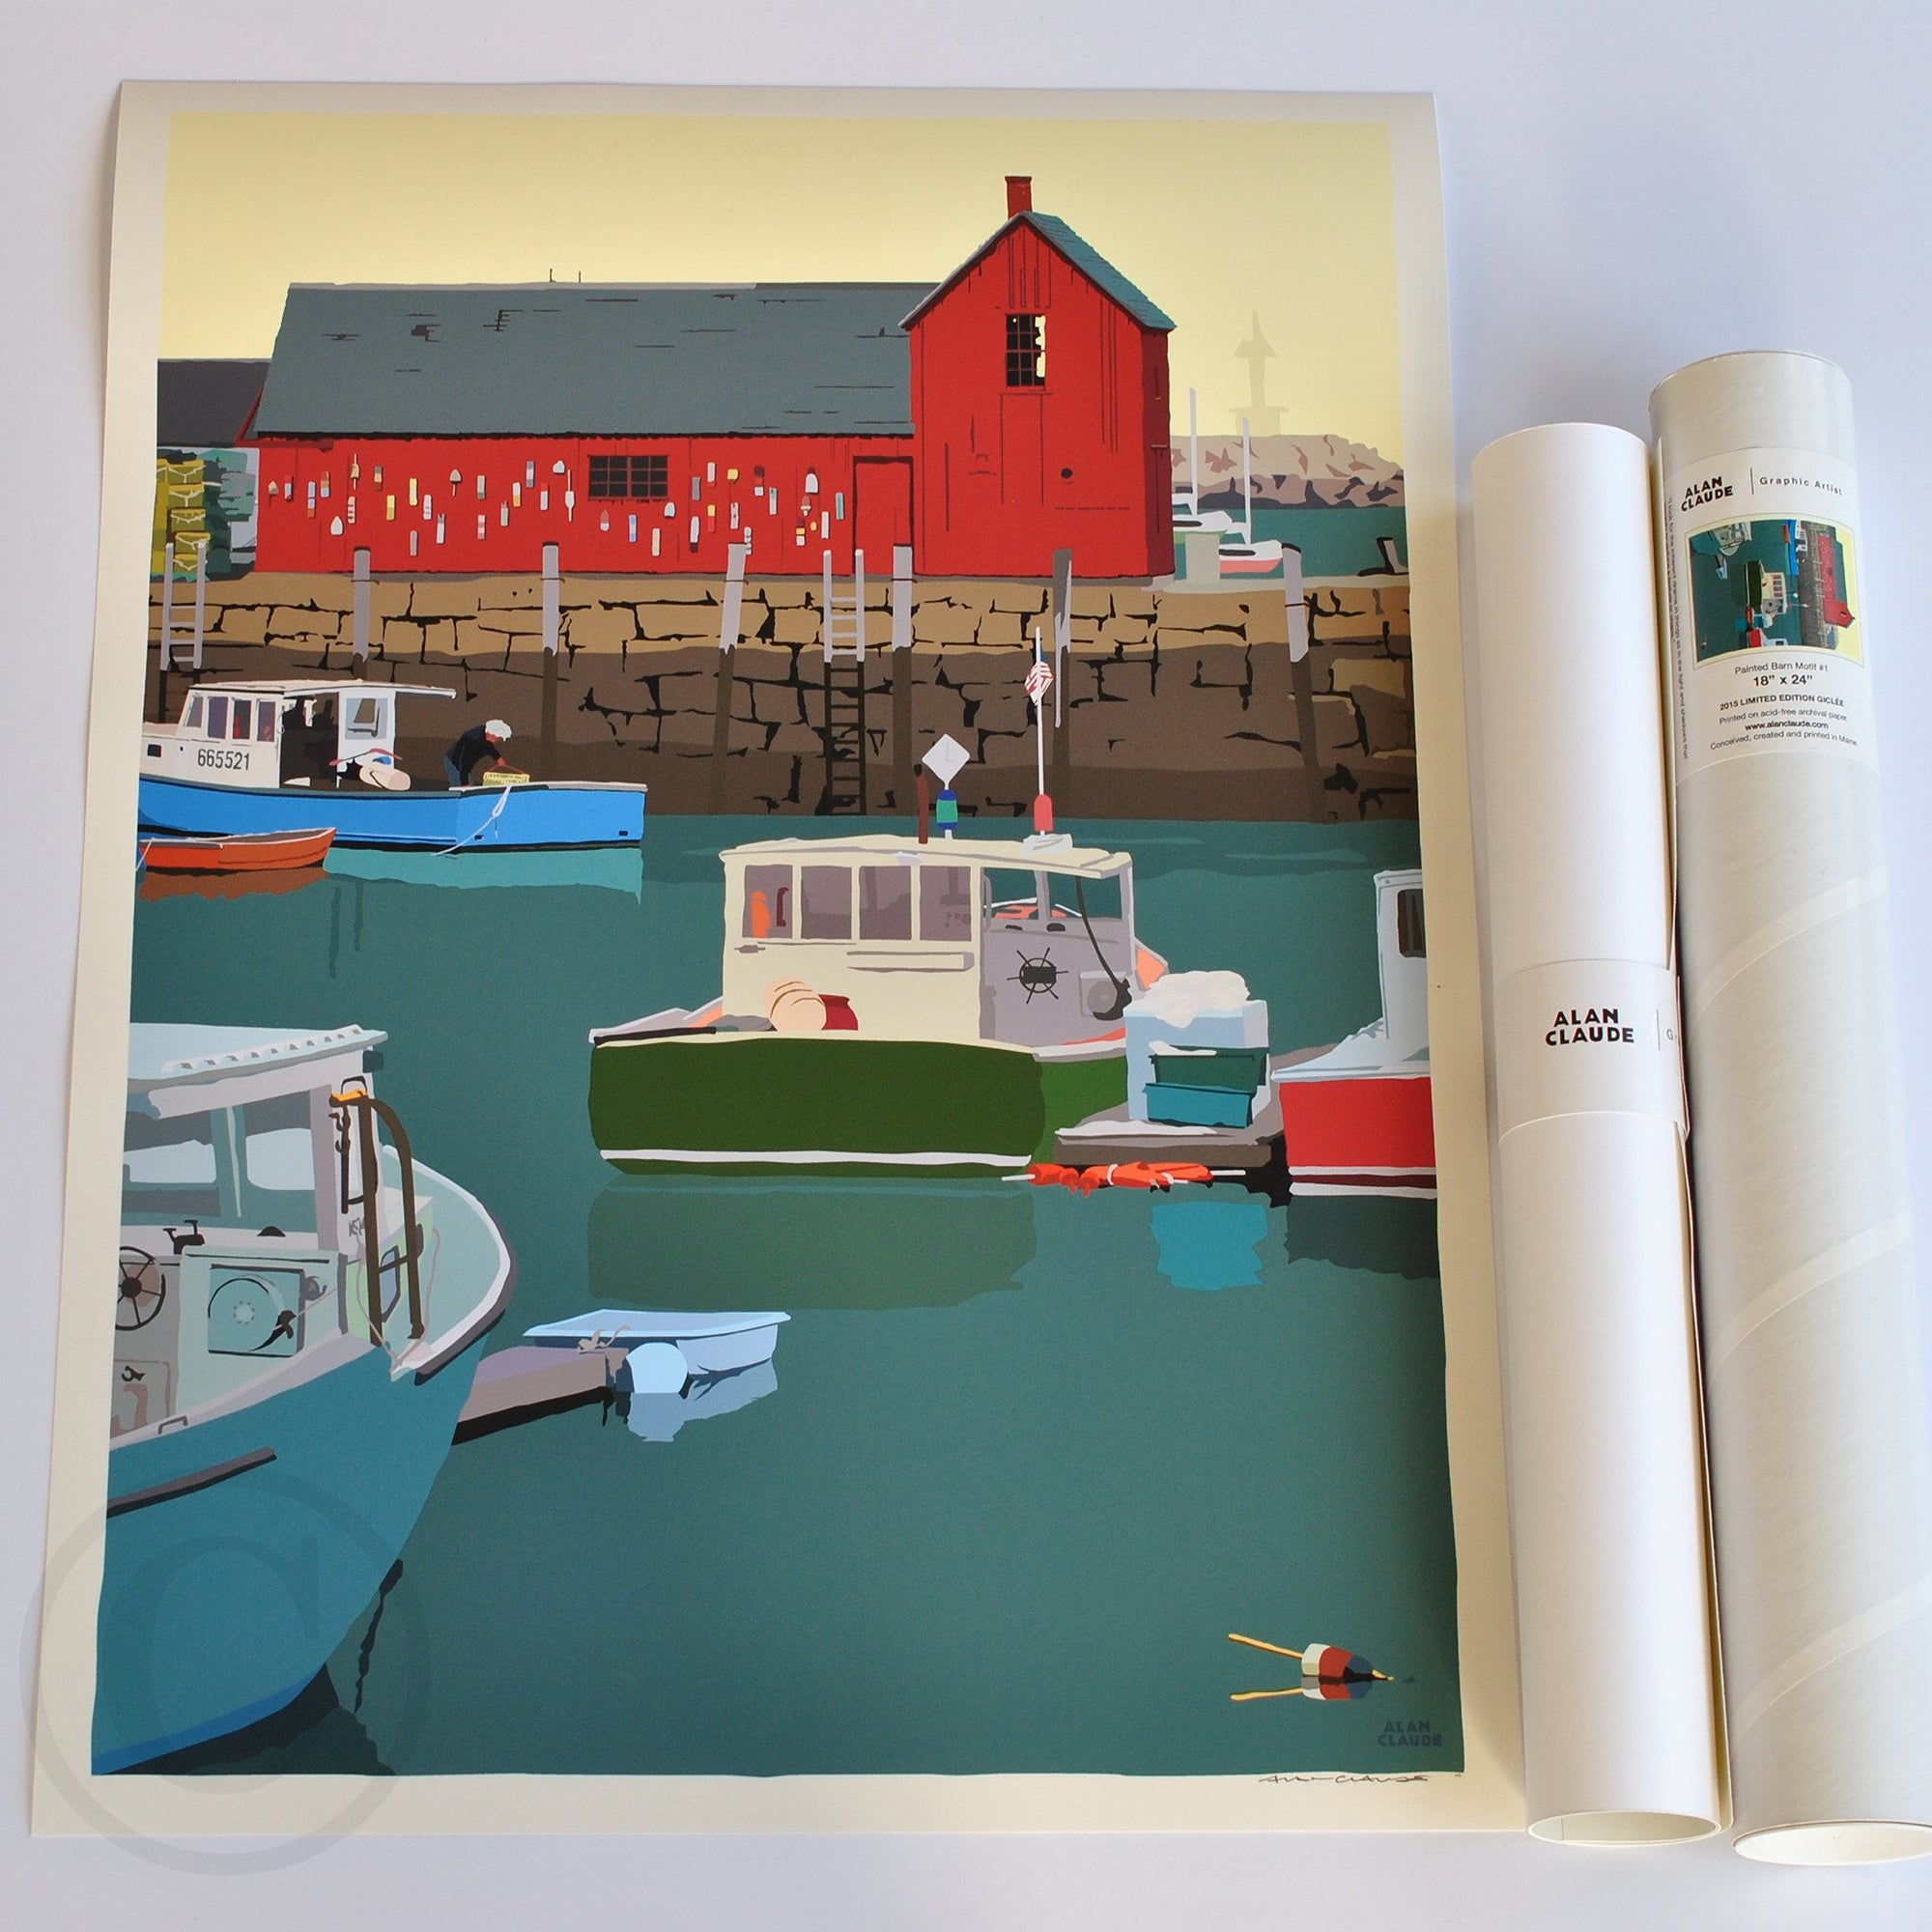 "Motif #1 - version A - Art Print 18"" x 24"" Wall Poster - Massachusetts"